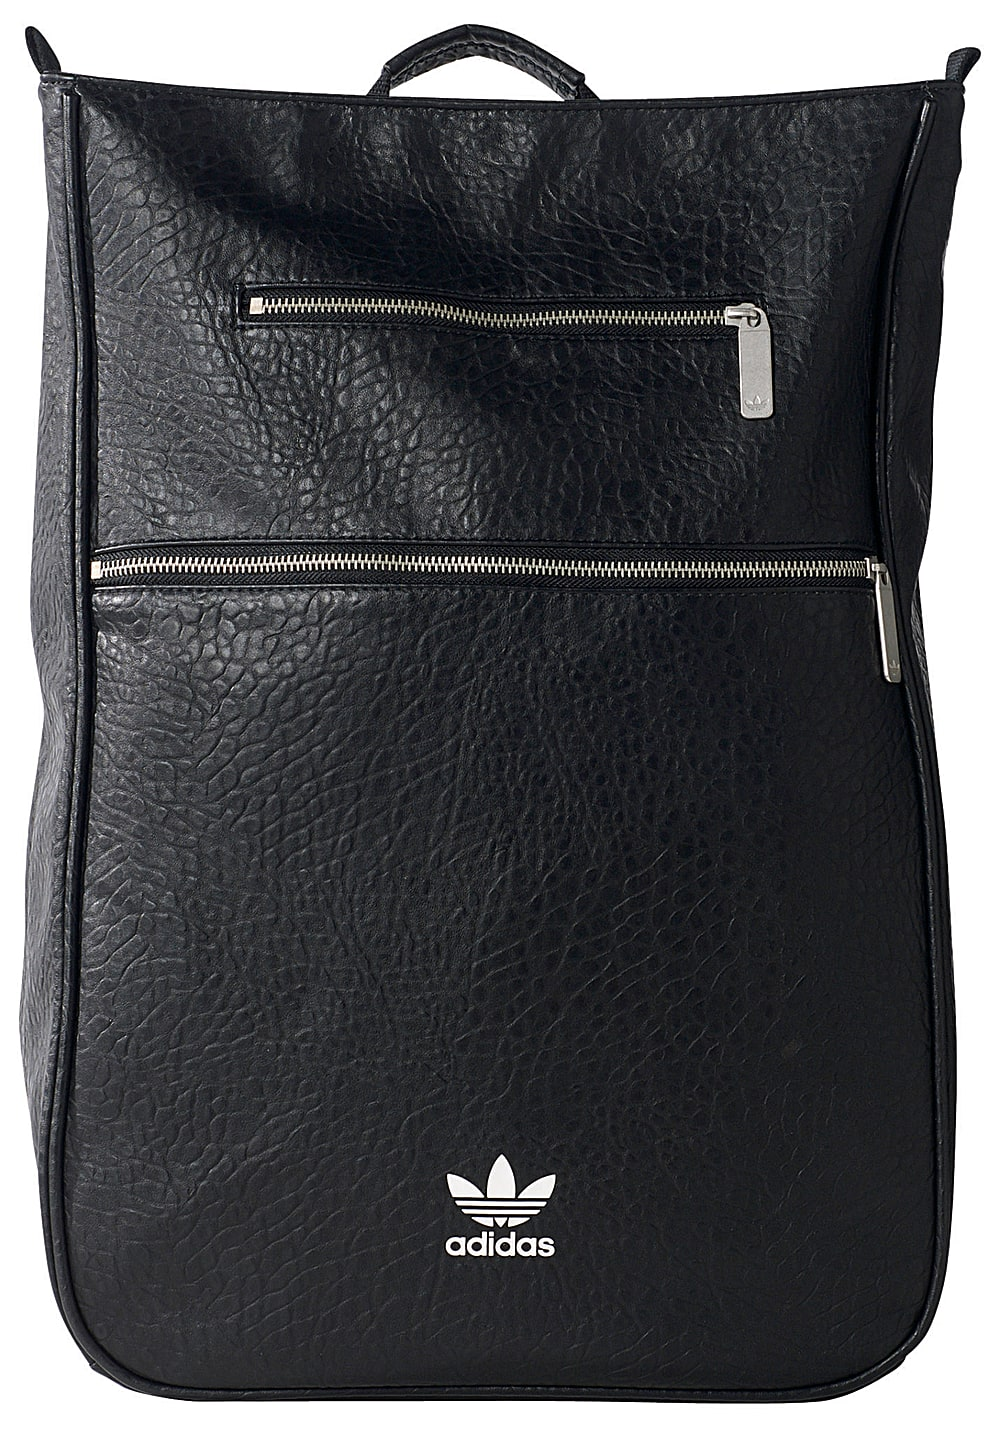 adidas ac f bp top rucksack f r herren schwarz planet sports. Black Bedroom Furniture Sets. Home Design Ideas